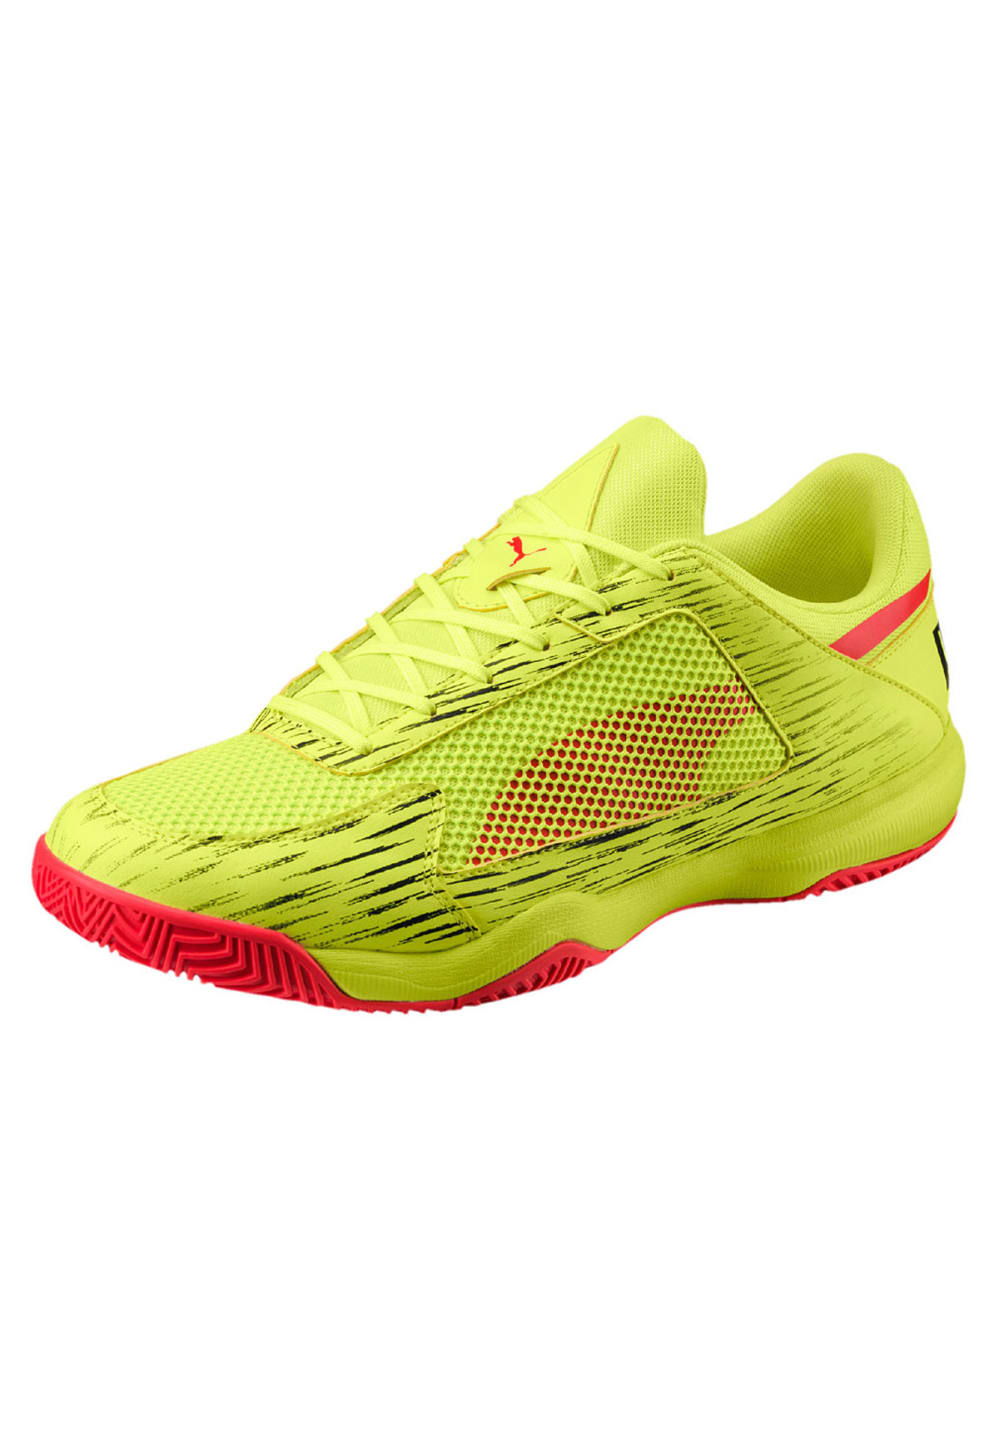 Puma Evospeed Indoor Netfit Euro 5 - Indoor shoes - Yellow  efebfb5c77ec